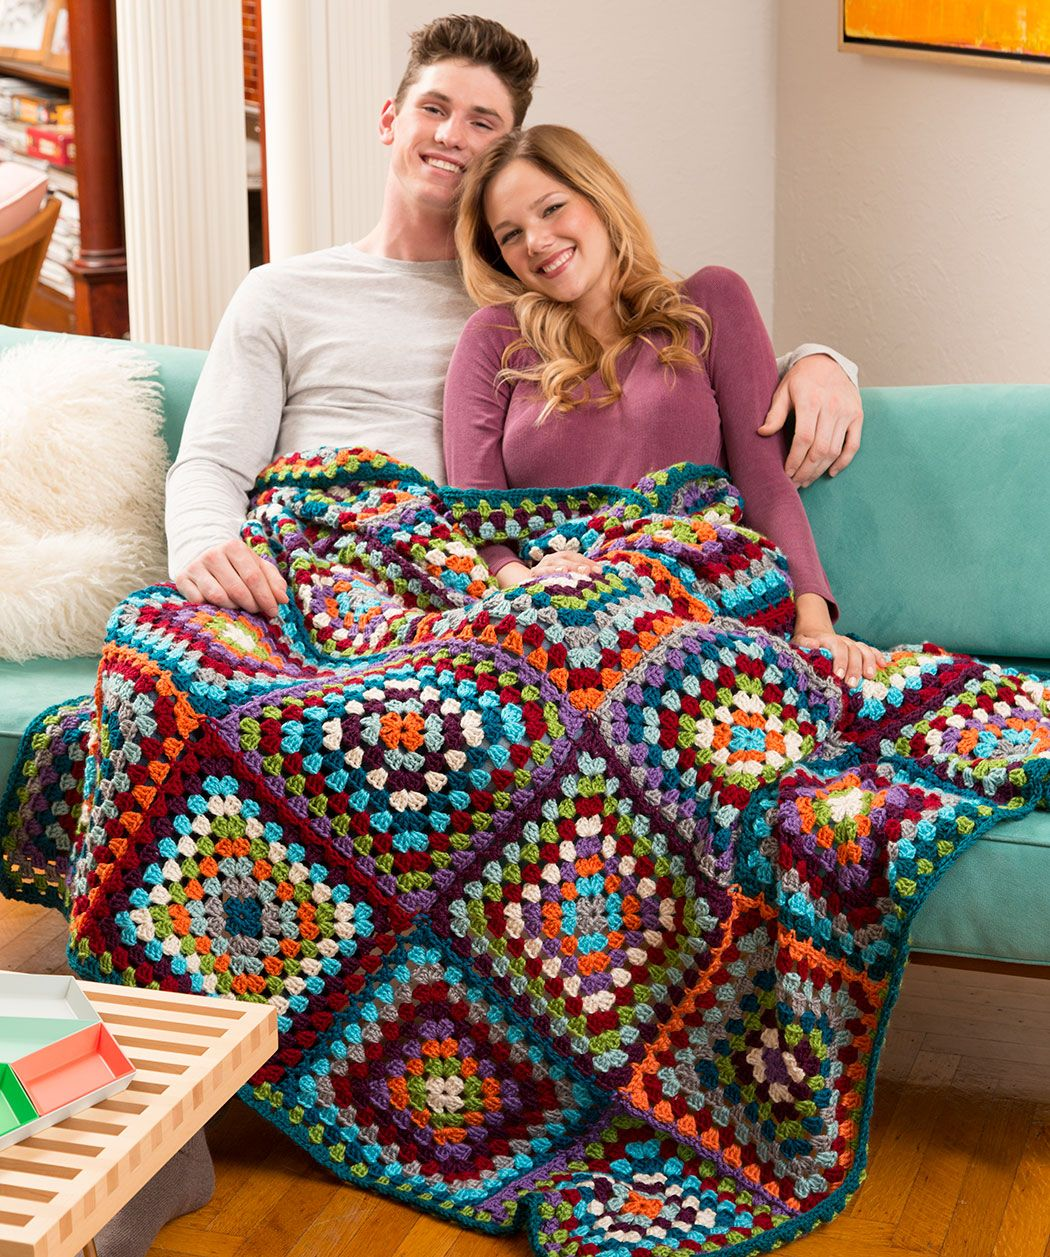 Its Fun To Crochet This Classic With New Yarns And An Array Of